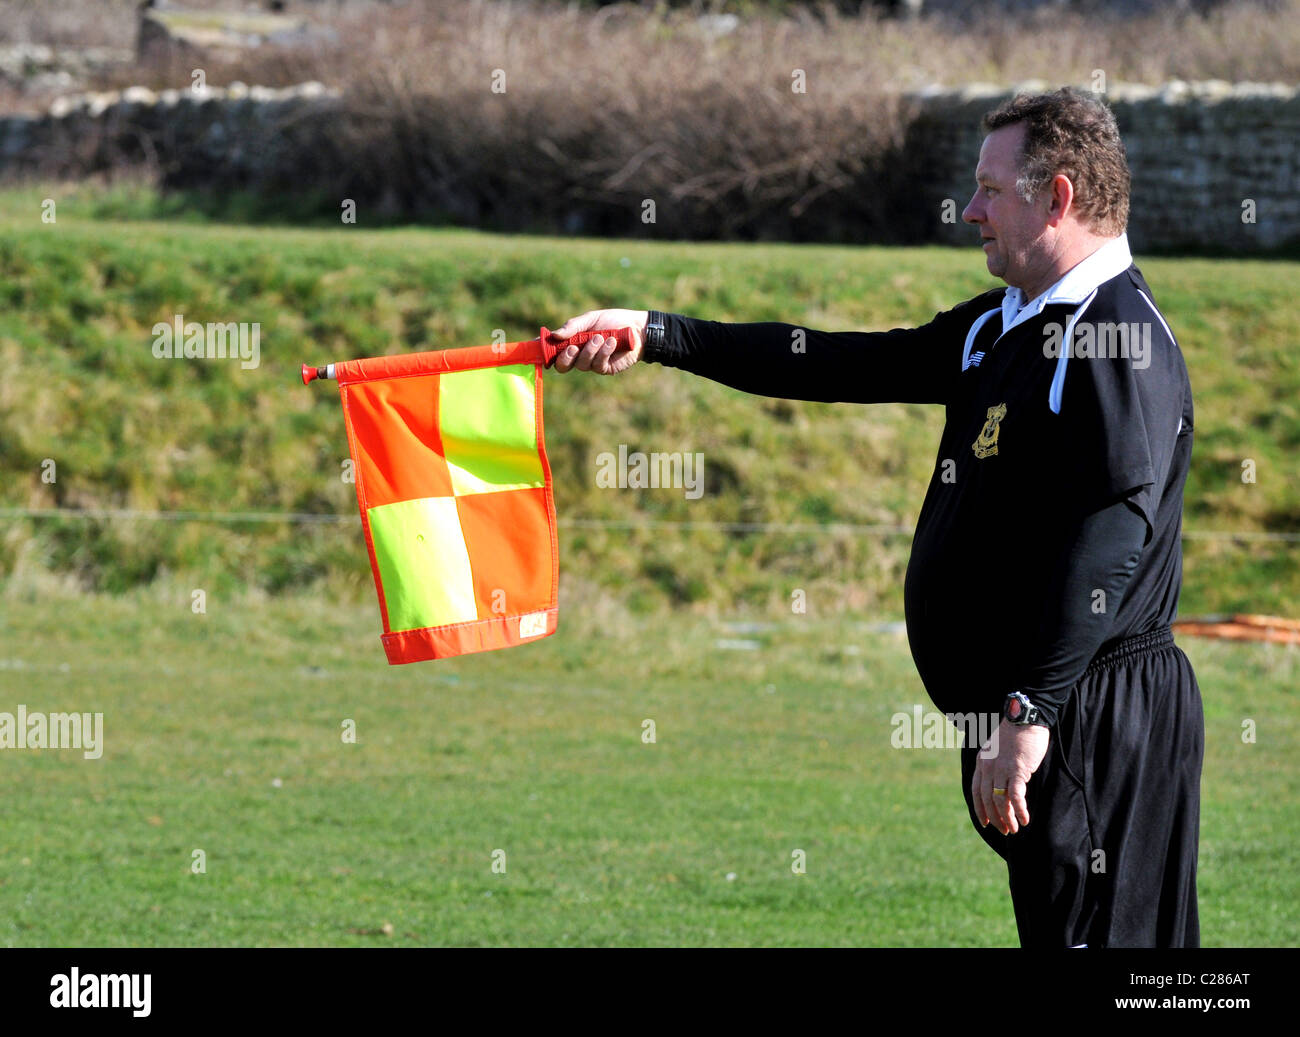 Linesman, football linesman, referee's assistant - Stock Image